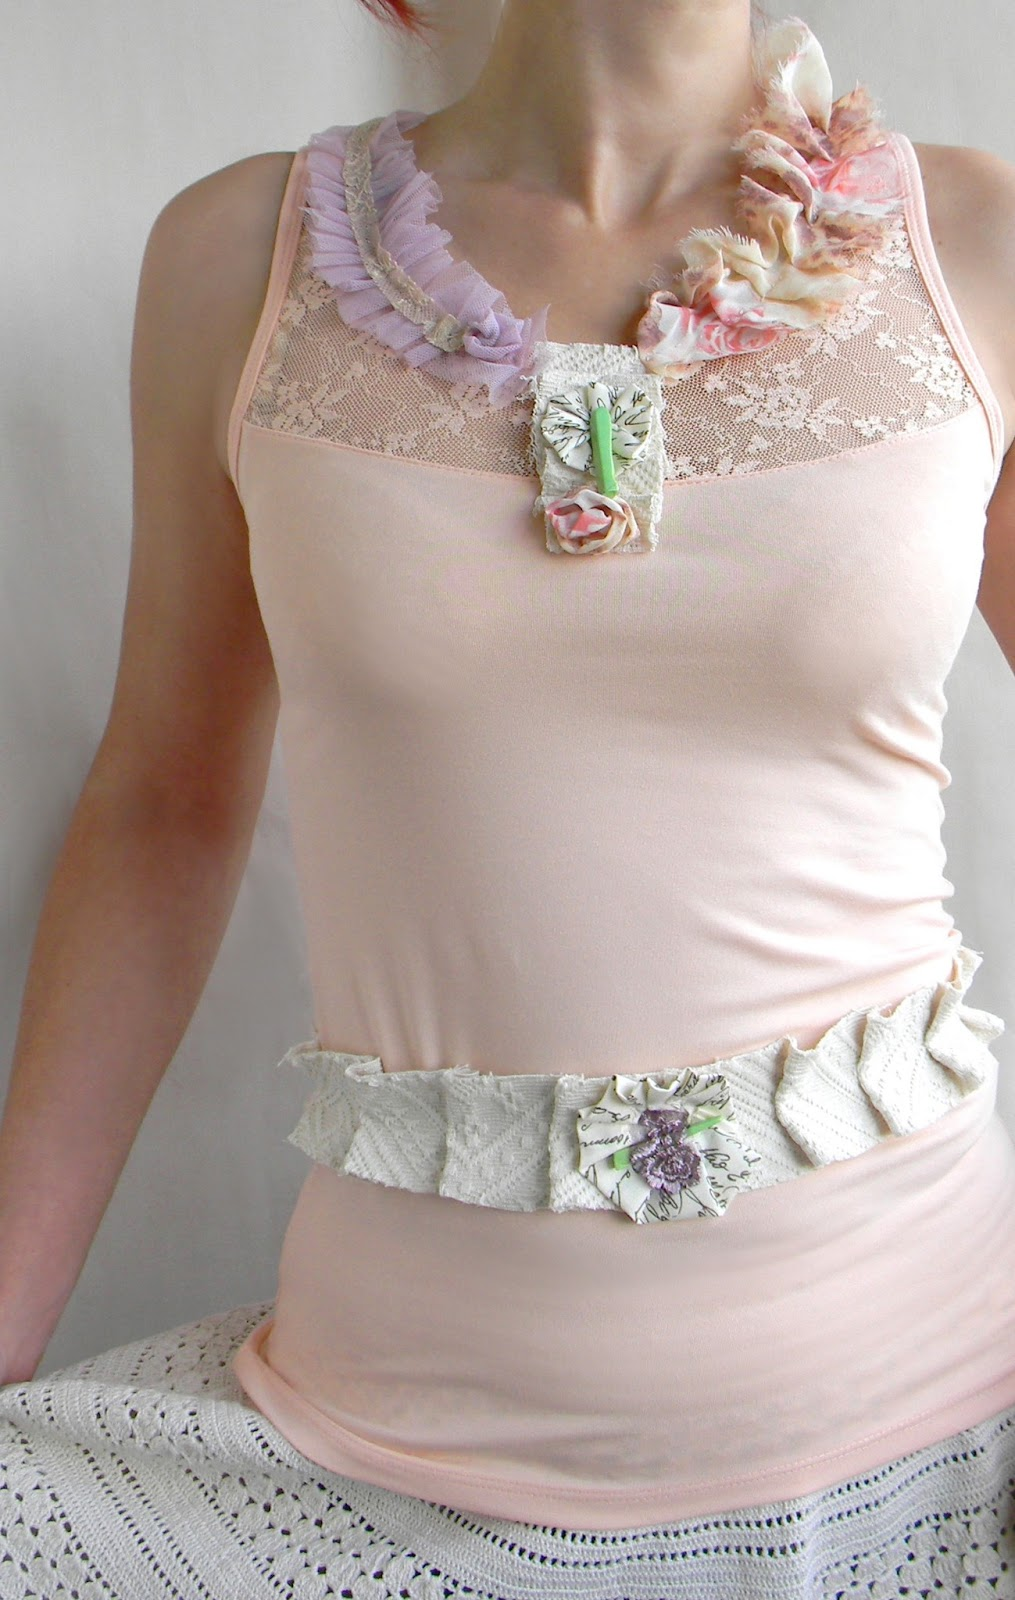 Summer Top Blouse with Waist Belt Romantic Vintage Inpired in Blush Pink Peach Pastels